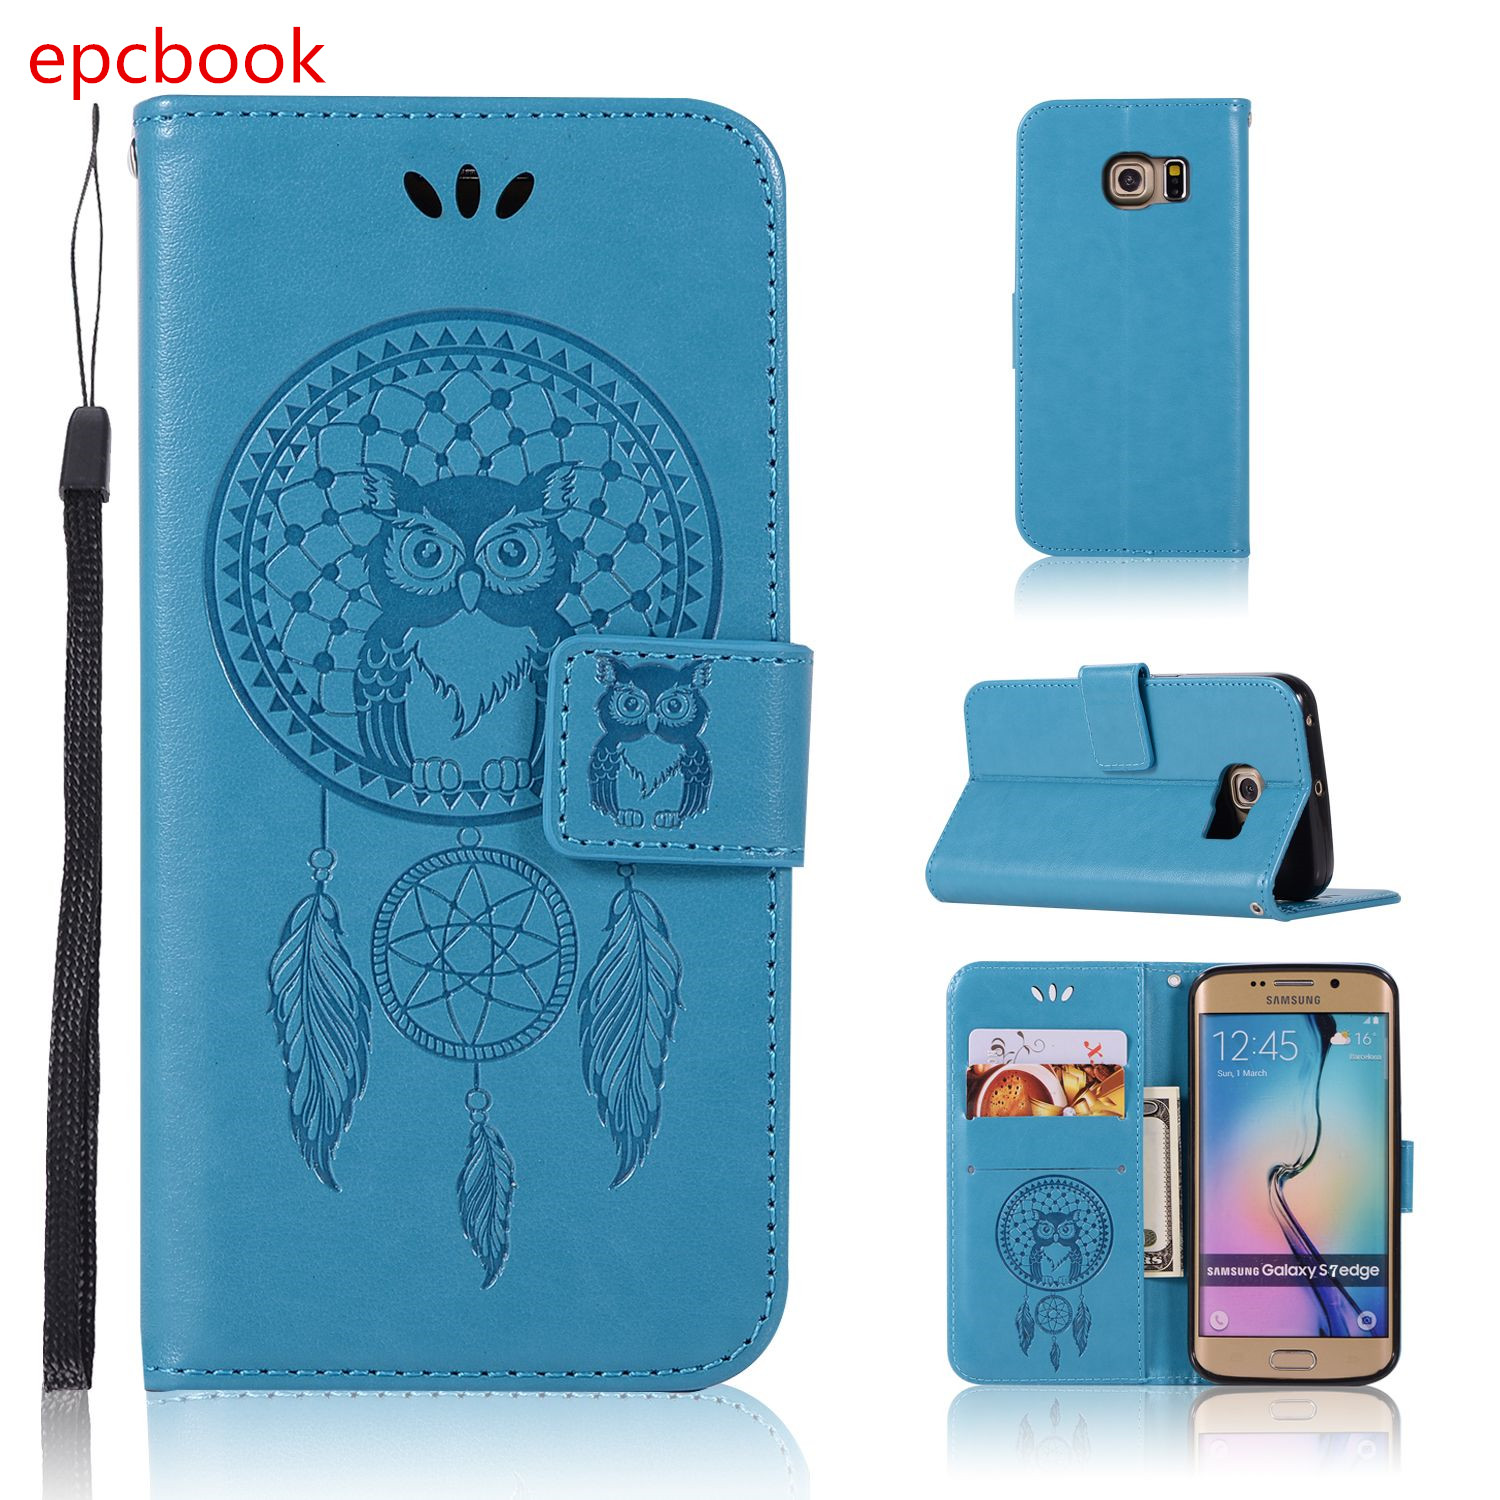 epcbook cute leather Wallet Case For Sumsung Galaxy s6edge s6 note8 Case For Galaxy S7edge s7 owl Luxury Flip Phone Cover shell